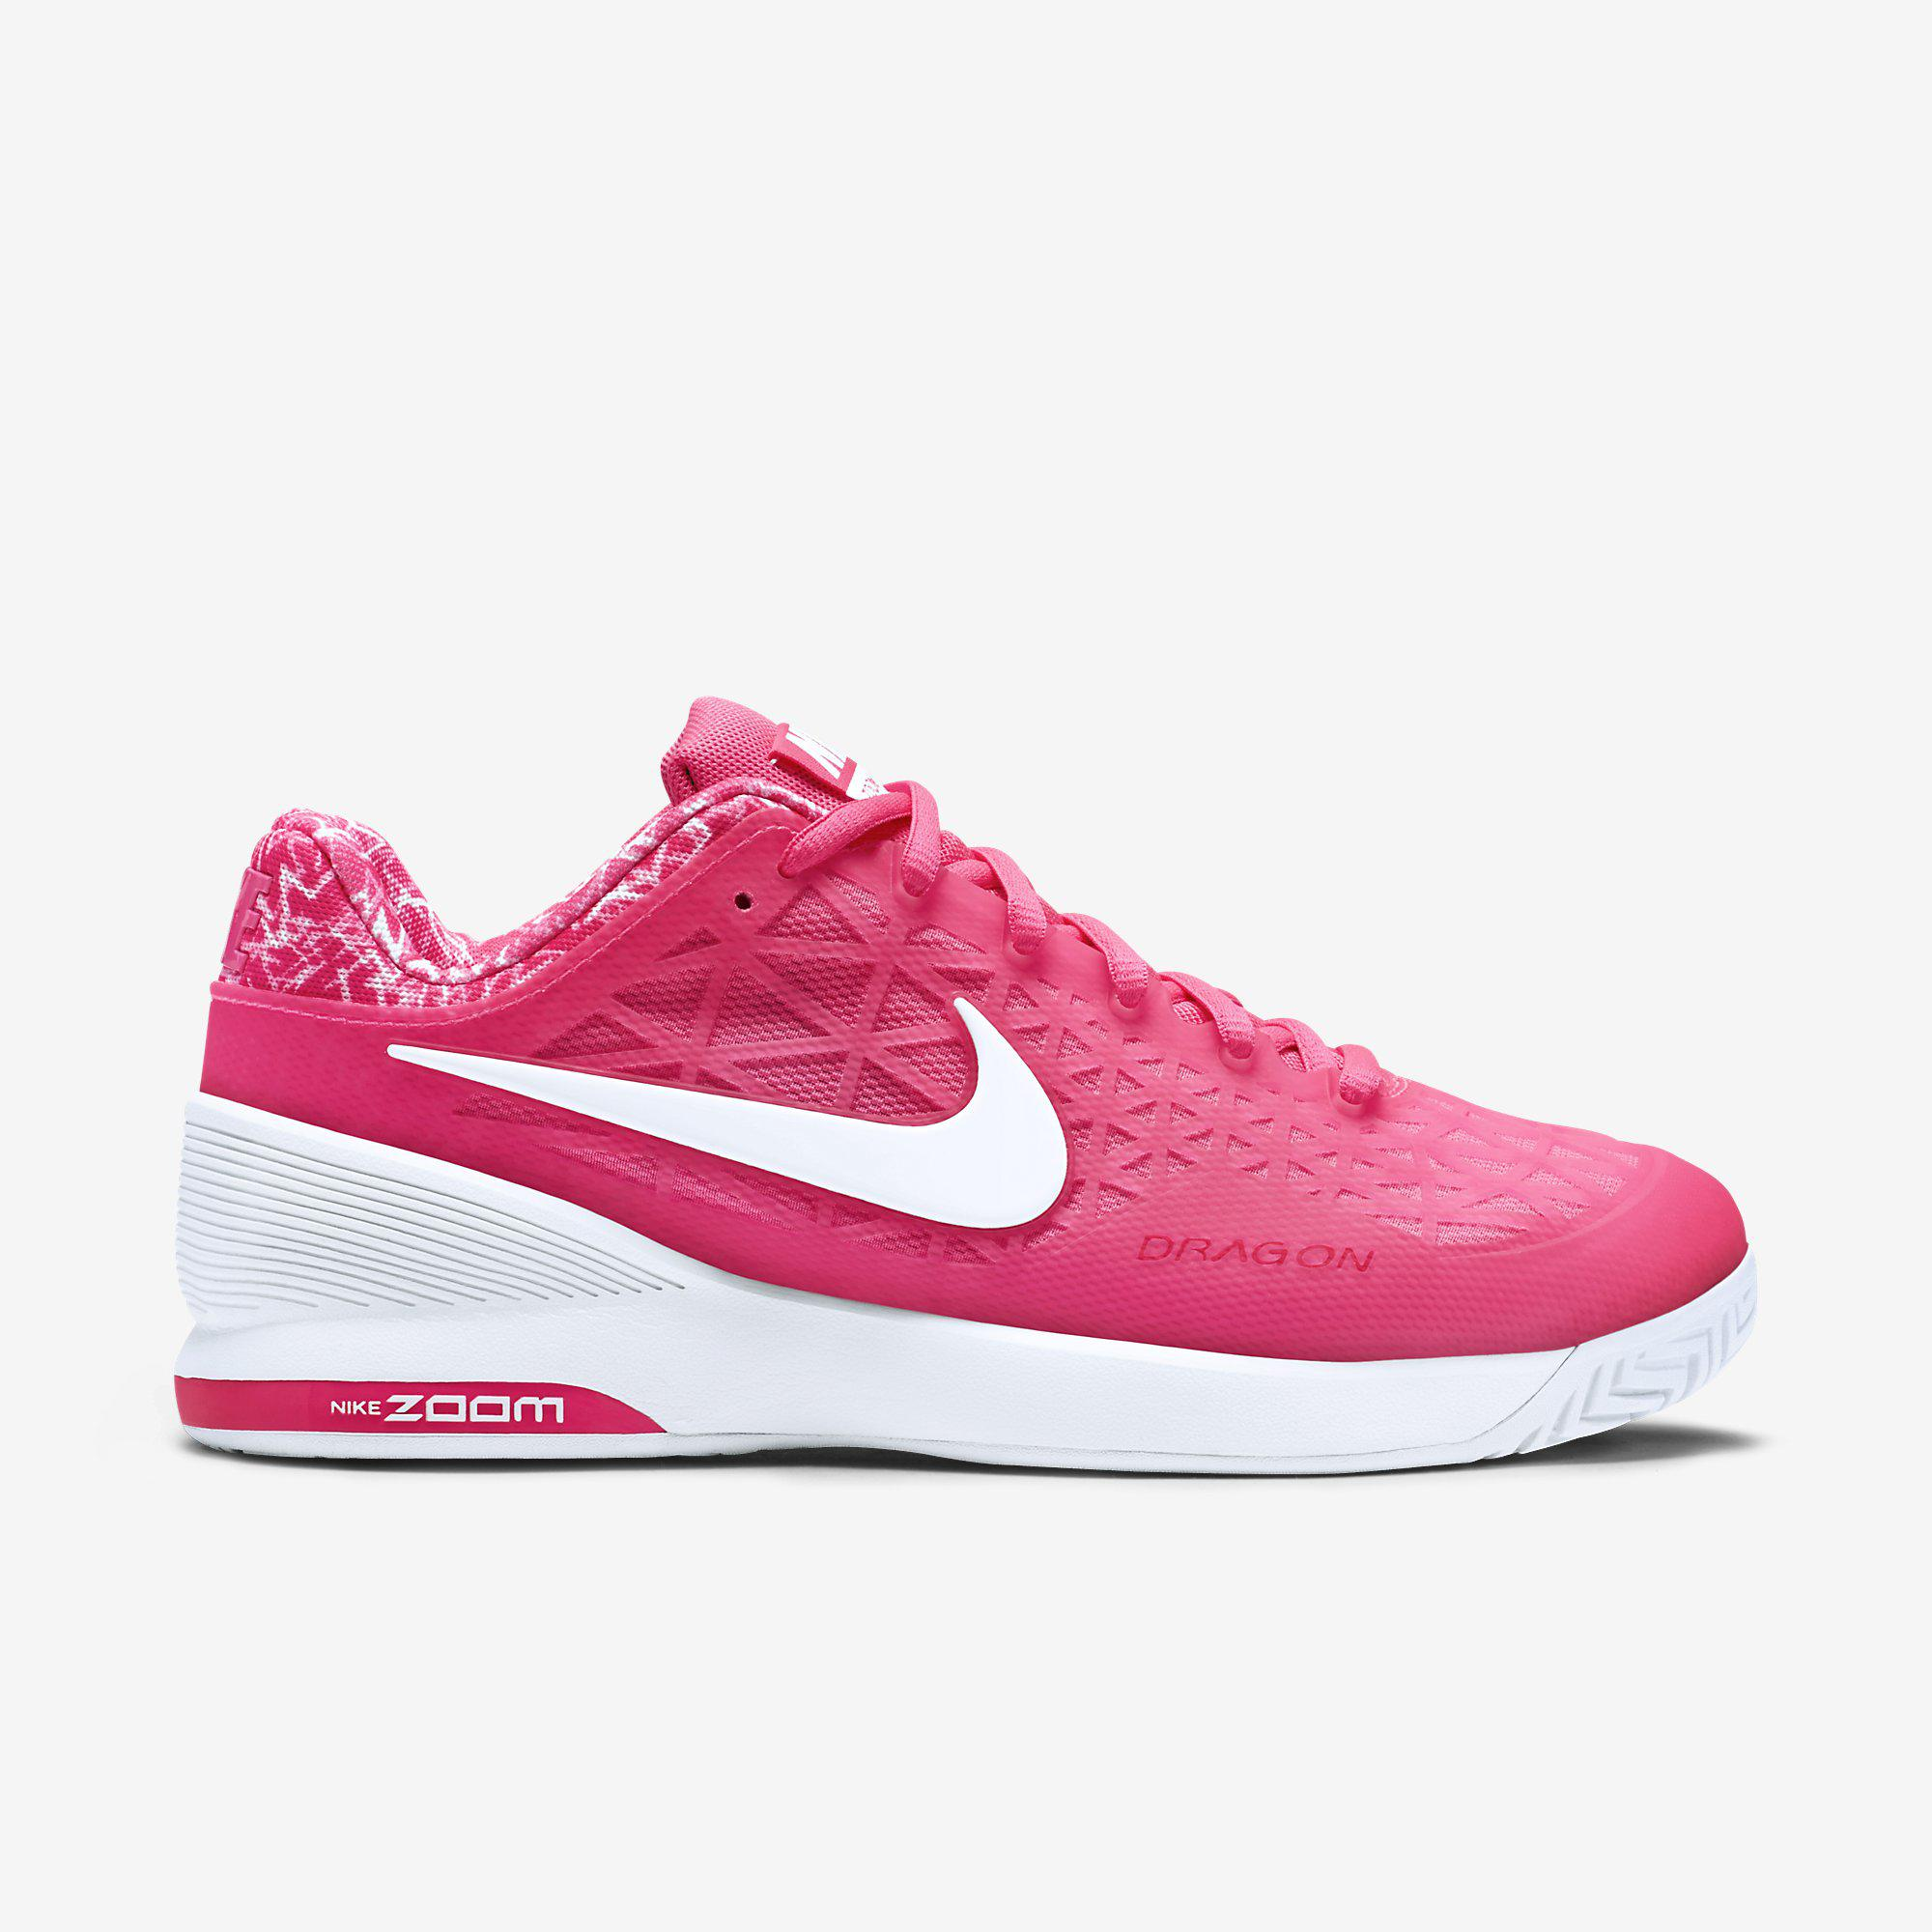 eafddd3526b6 Nike Womens Zoom Cage 2 Tennis Shoes - Pink White - Tennisnuts.com